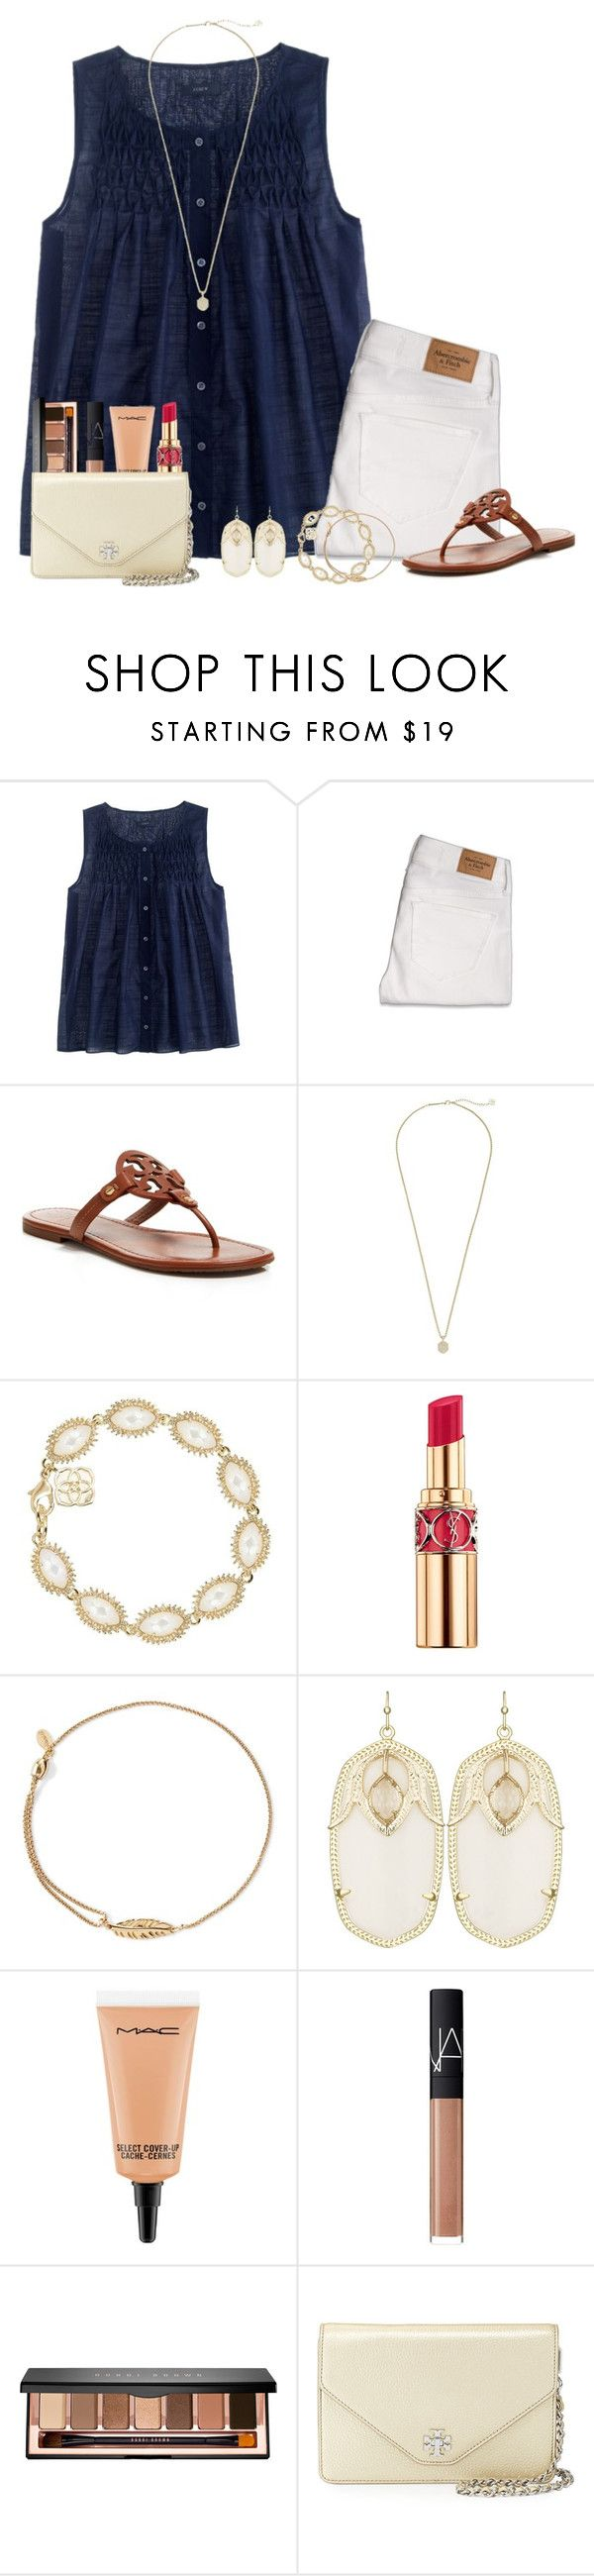 """""""summer dinner outfit"""" by lilypackard ❤ liked on Polyvore featuring J.Crew, Abercrombie & Fitch, Tory Burch, Kendra Scott, Yves Saint Laurent, Alex and Ani, MAC Cosmetics, NARS Cosmetics and Bobbi Brown Cosmetics"""